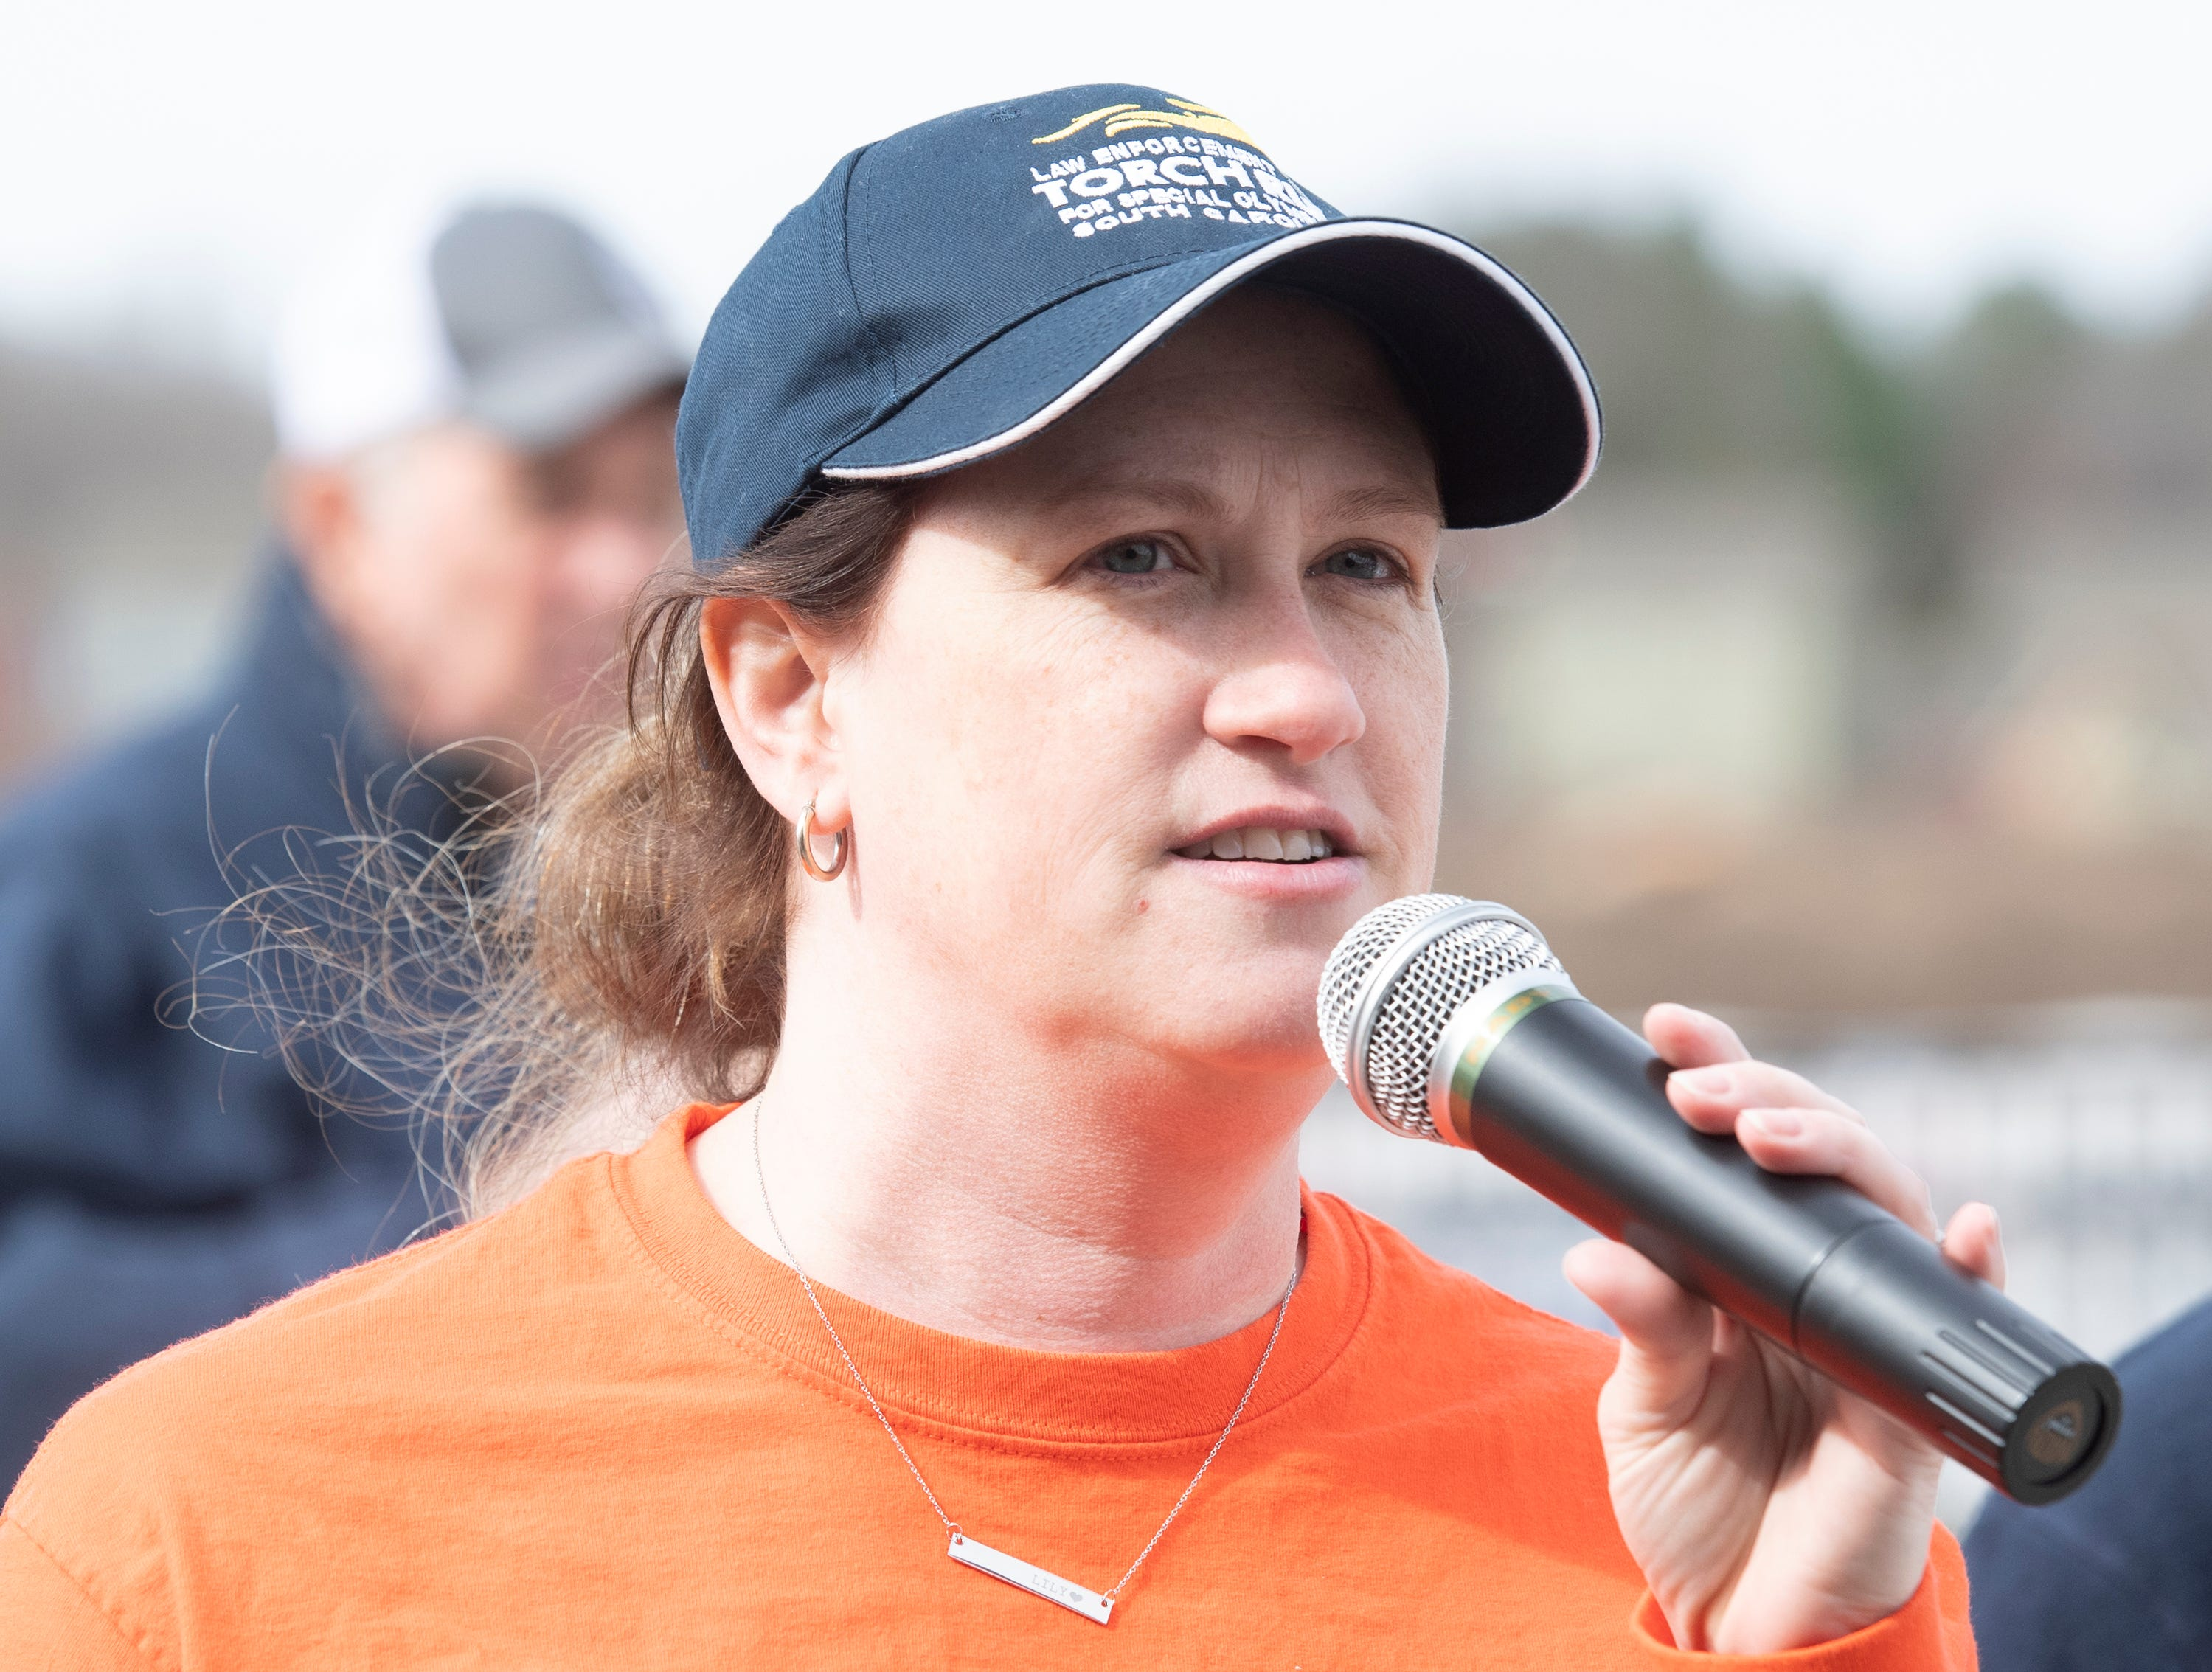 Leigh Lowery, director of communications for Special Olympics South Carolina, address the crowd gathered for the 2019 Tiger Paw Polar Plunge at in the pool at The Pier housing complex in Seneca Saturday, Feb. 9, 2019.